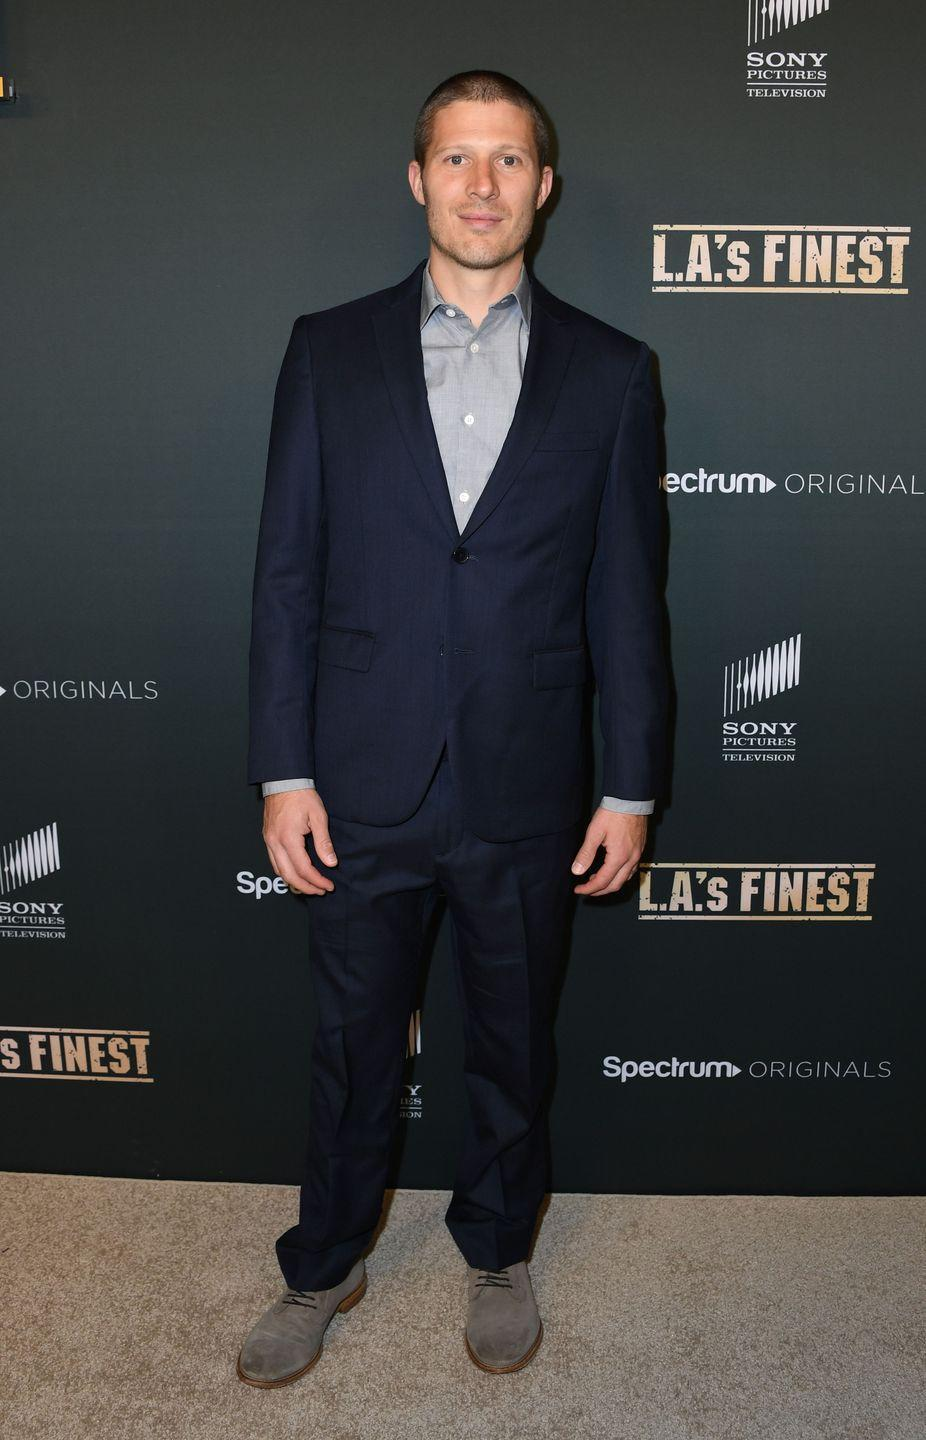 """<p>After the series wrapped, Gilford starred in some one-season shows, including <em>Off the Map, The Family,</em> and the web series, <em>Lifeline</em>. He also had a cameo in Taylor Swift's music video for her single """"Ours."""" He currently stars in <em>L.A.'s Finest</em> and also has a recurring role on NBC's<em> Good Girls.</em></p>"""